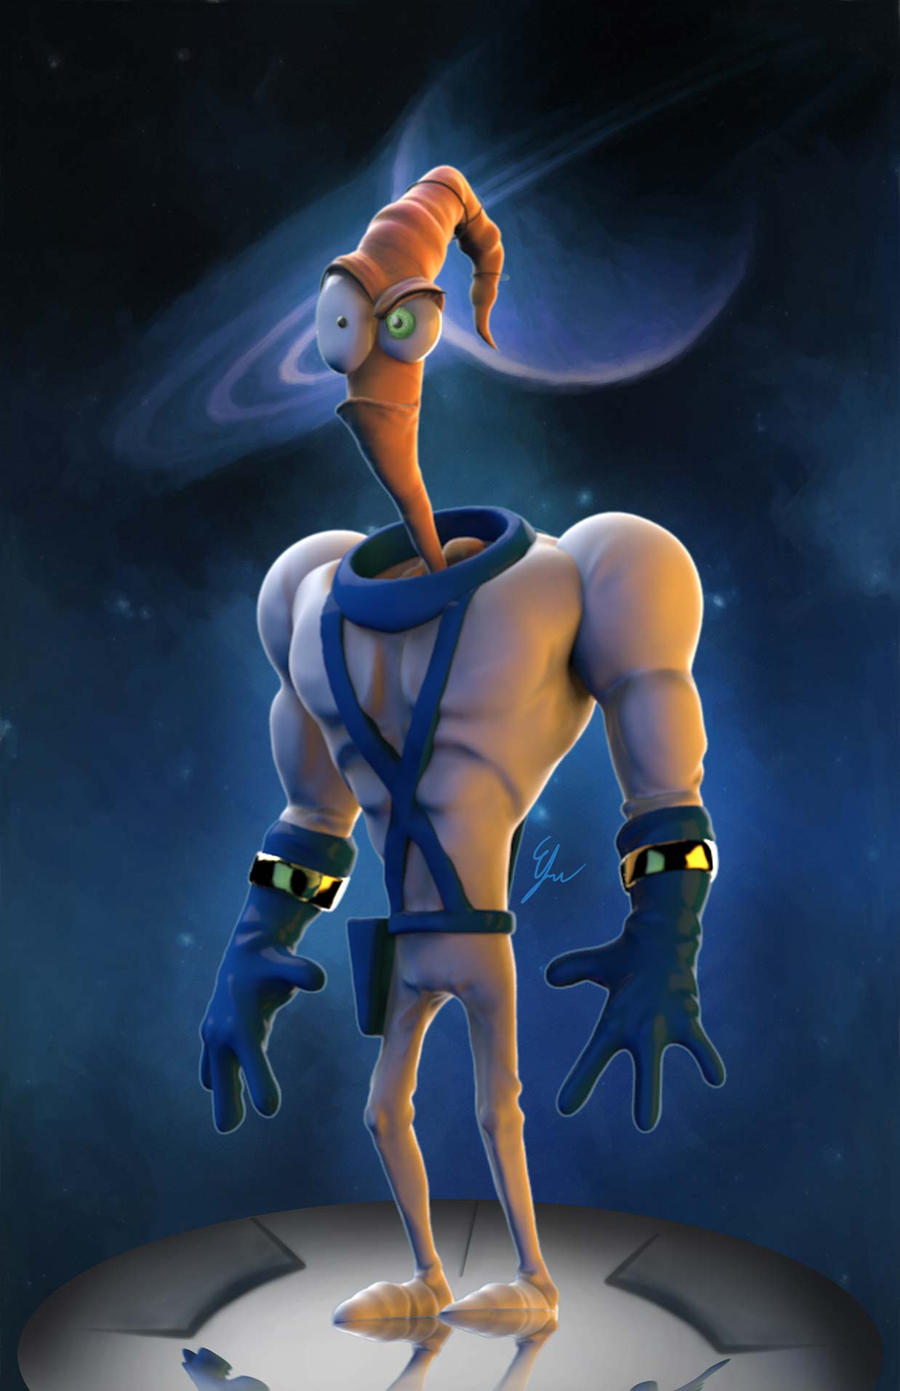 Earthworm Jim by Efraimrdz on DeviantArt